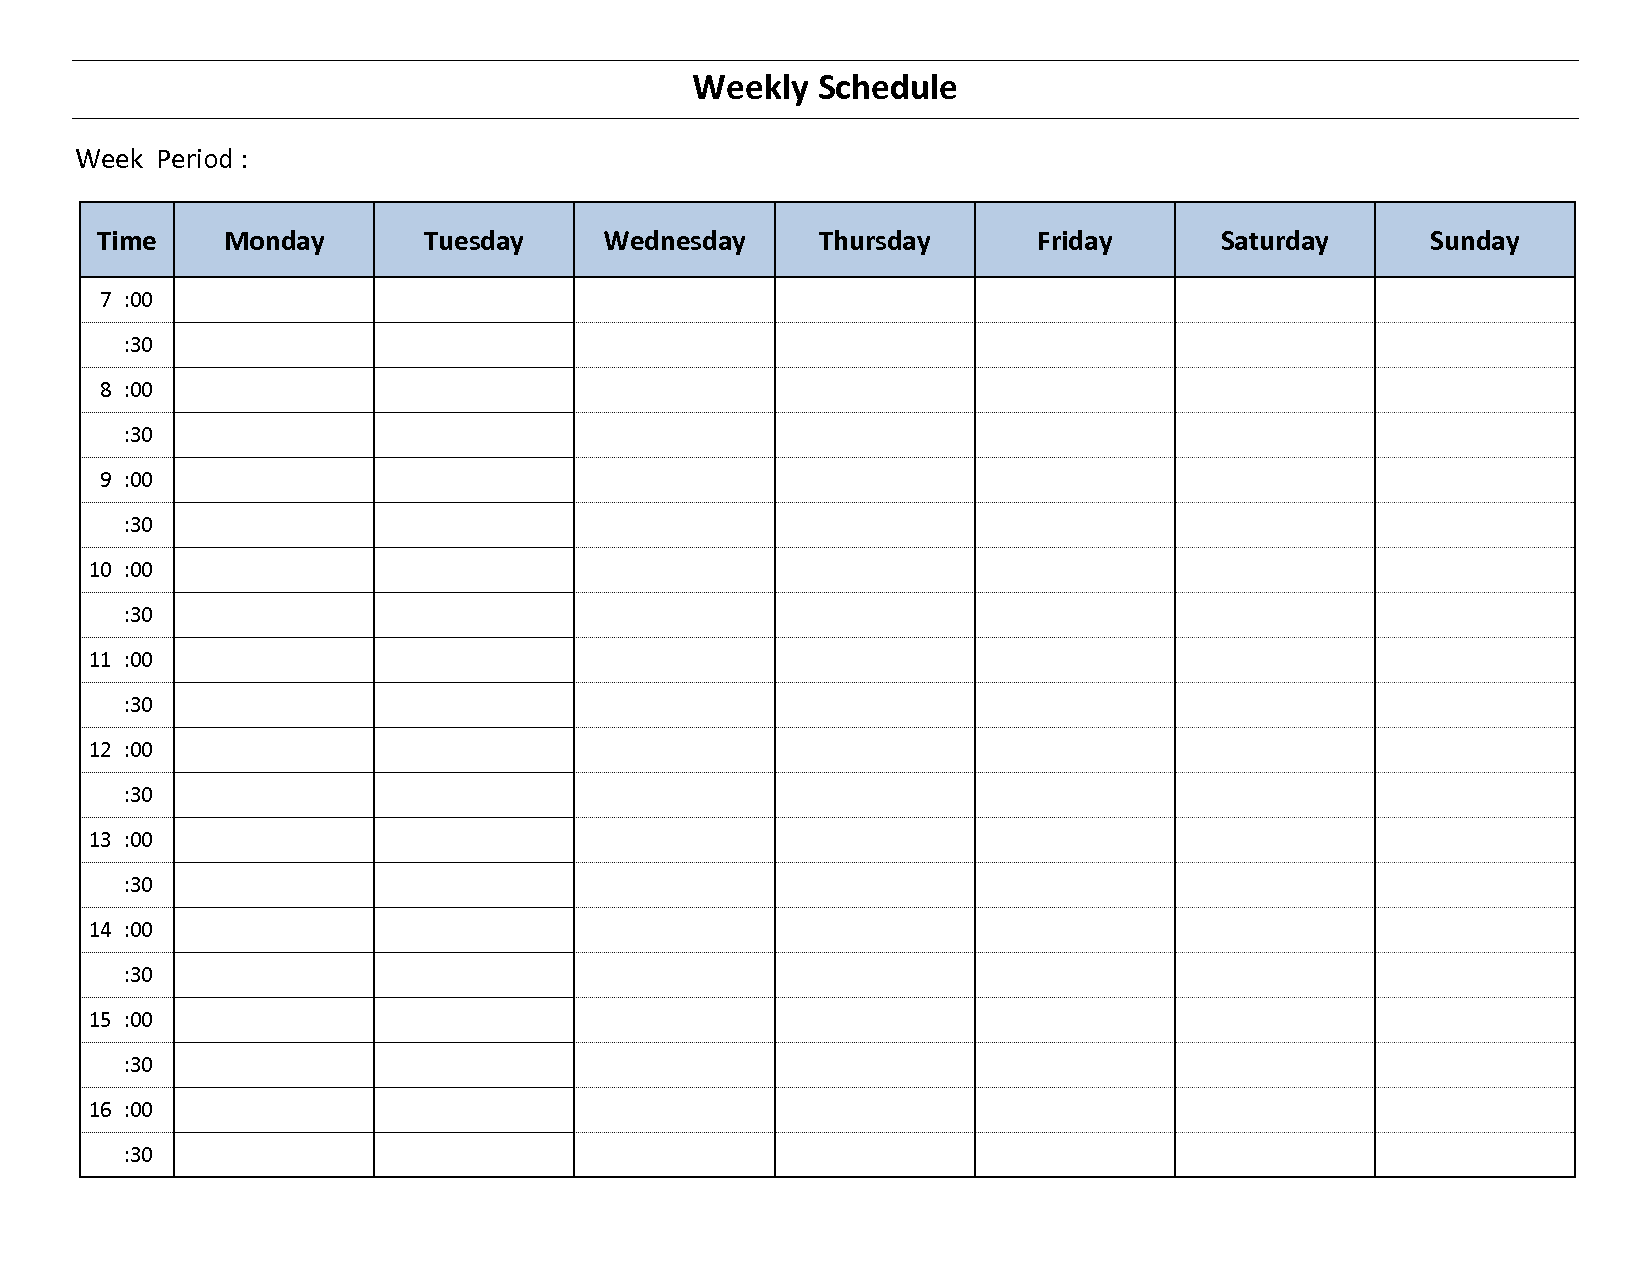 Construction Schedule Template Excel Free Download  Construction Schedules Templates